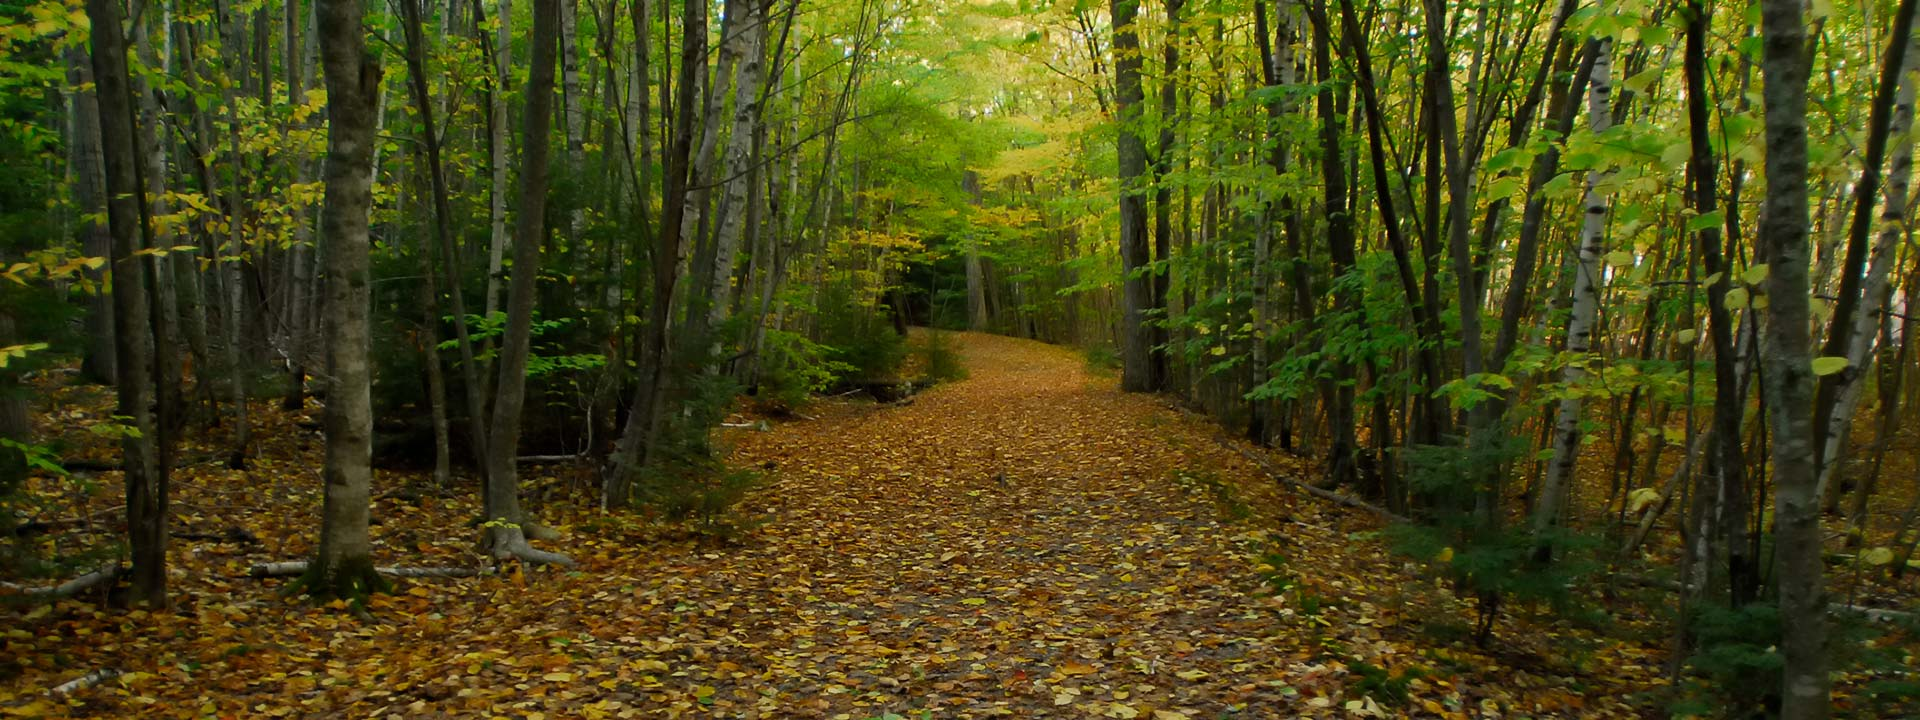 leafy path in woods